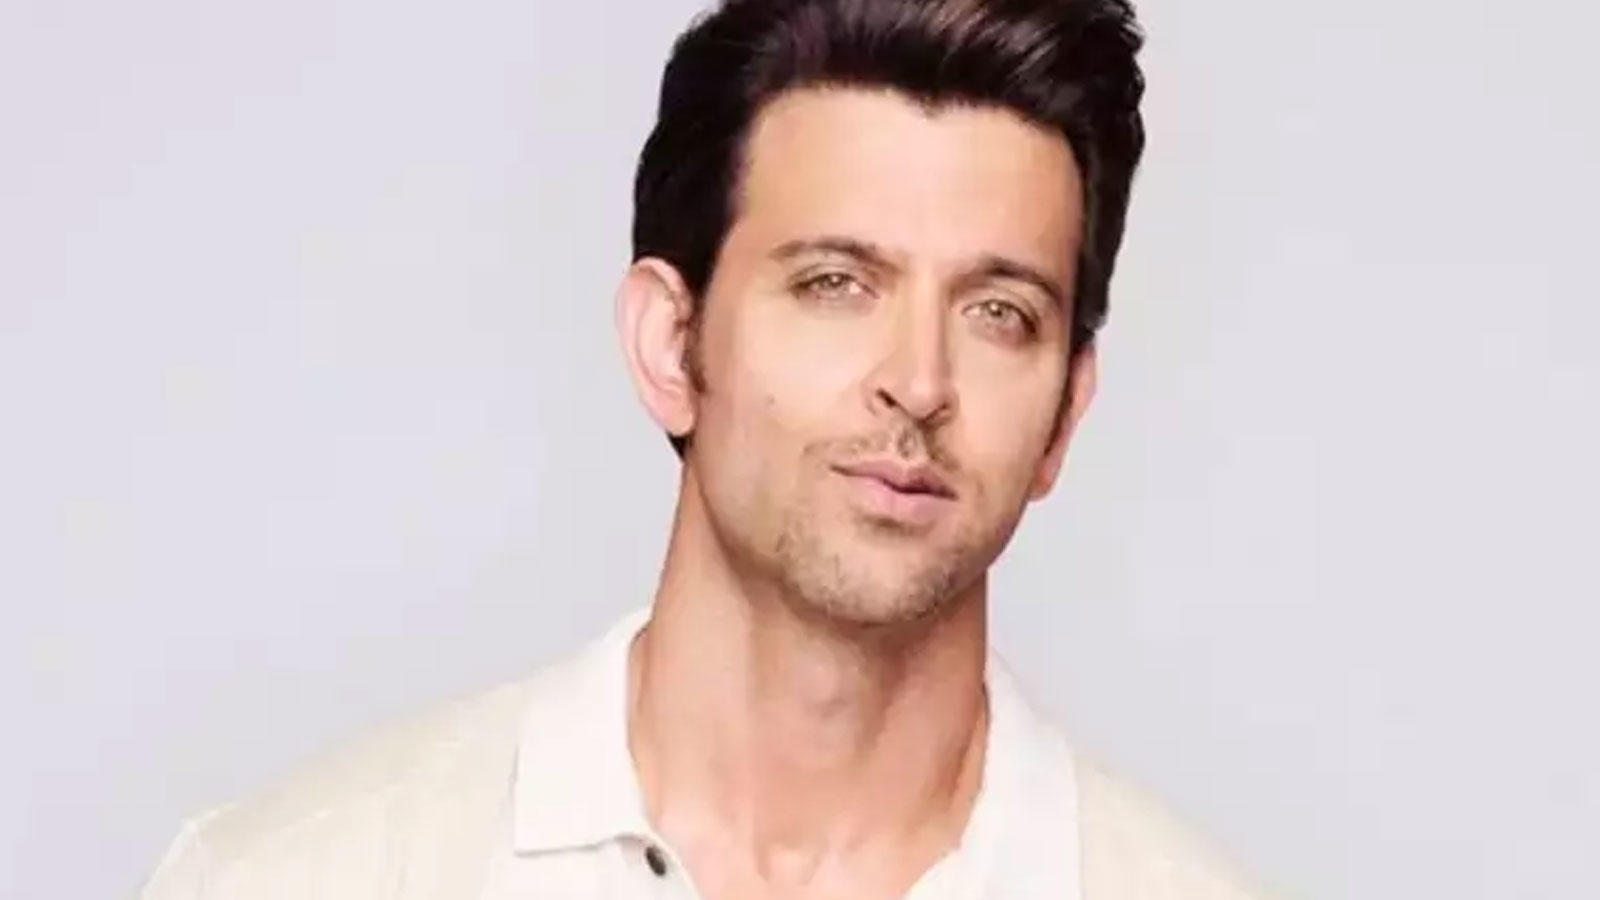 hrithik-roshan-buys-rs-97-50-crore-house-on-juhu-versova-link-road-details-inside